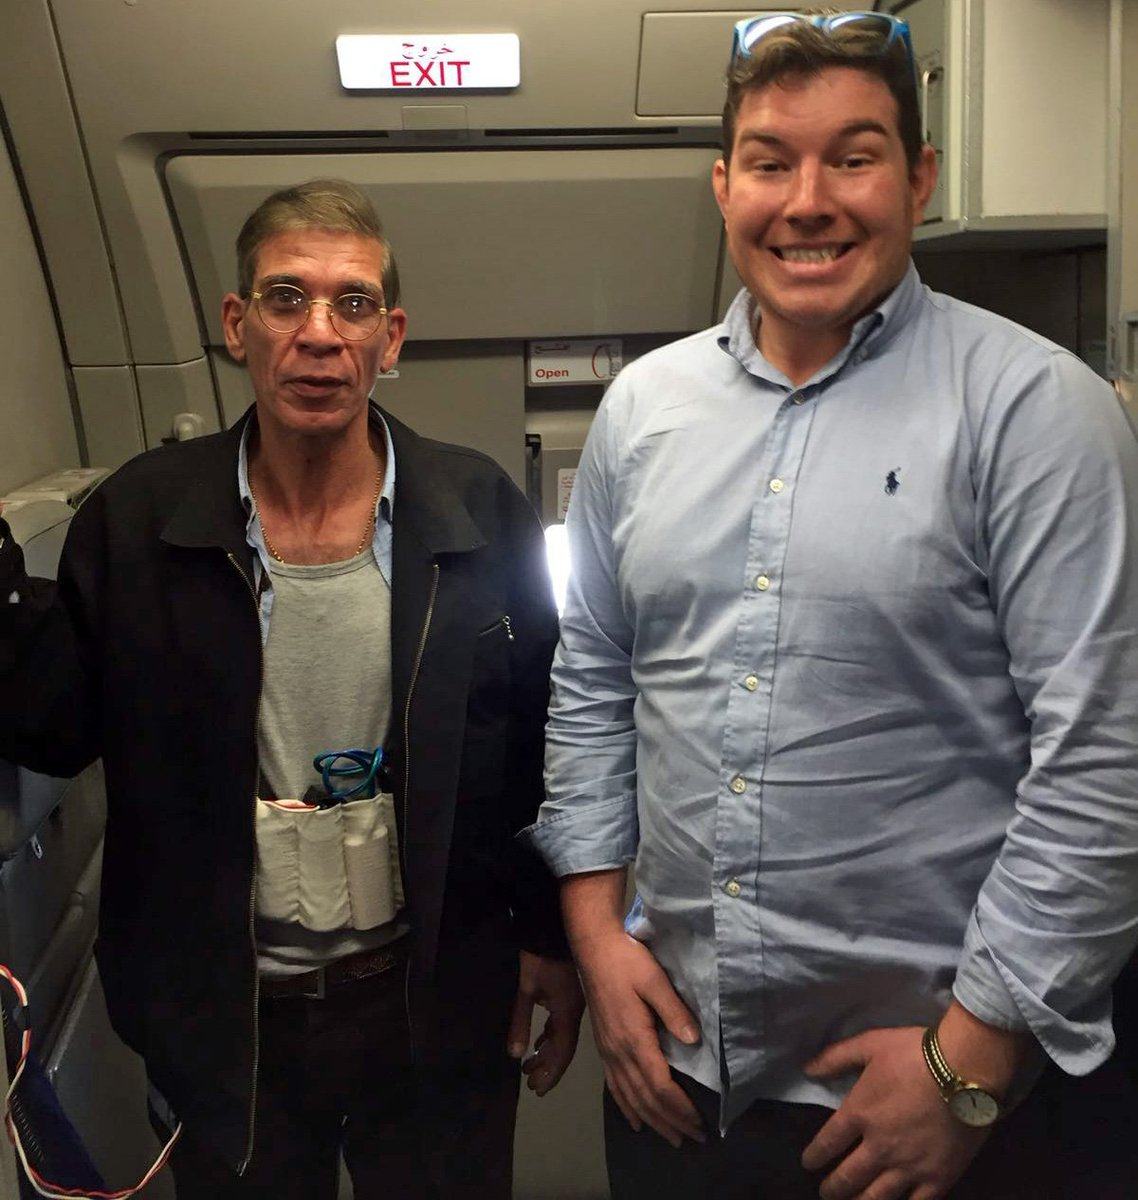 Aberdeen man poses for photo with EgyptAir plane hijacker https://t.co/fXtgRf0c58 https://t.co/JnfBsuDAws